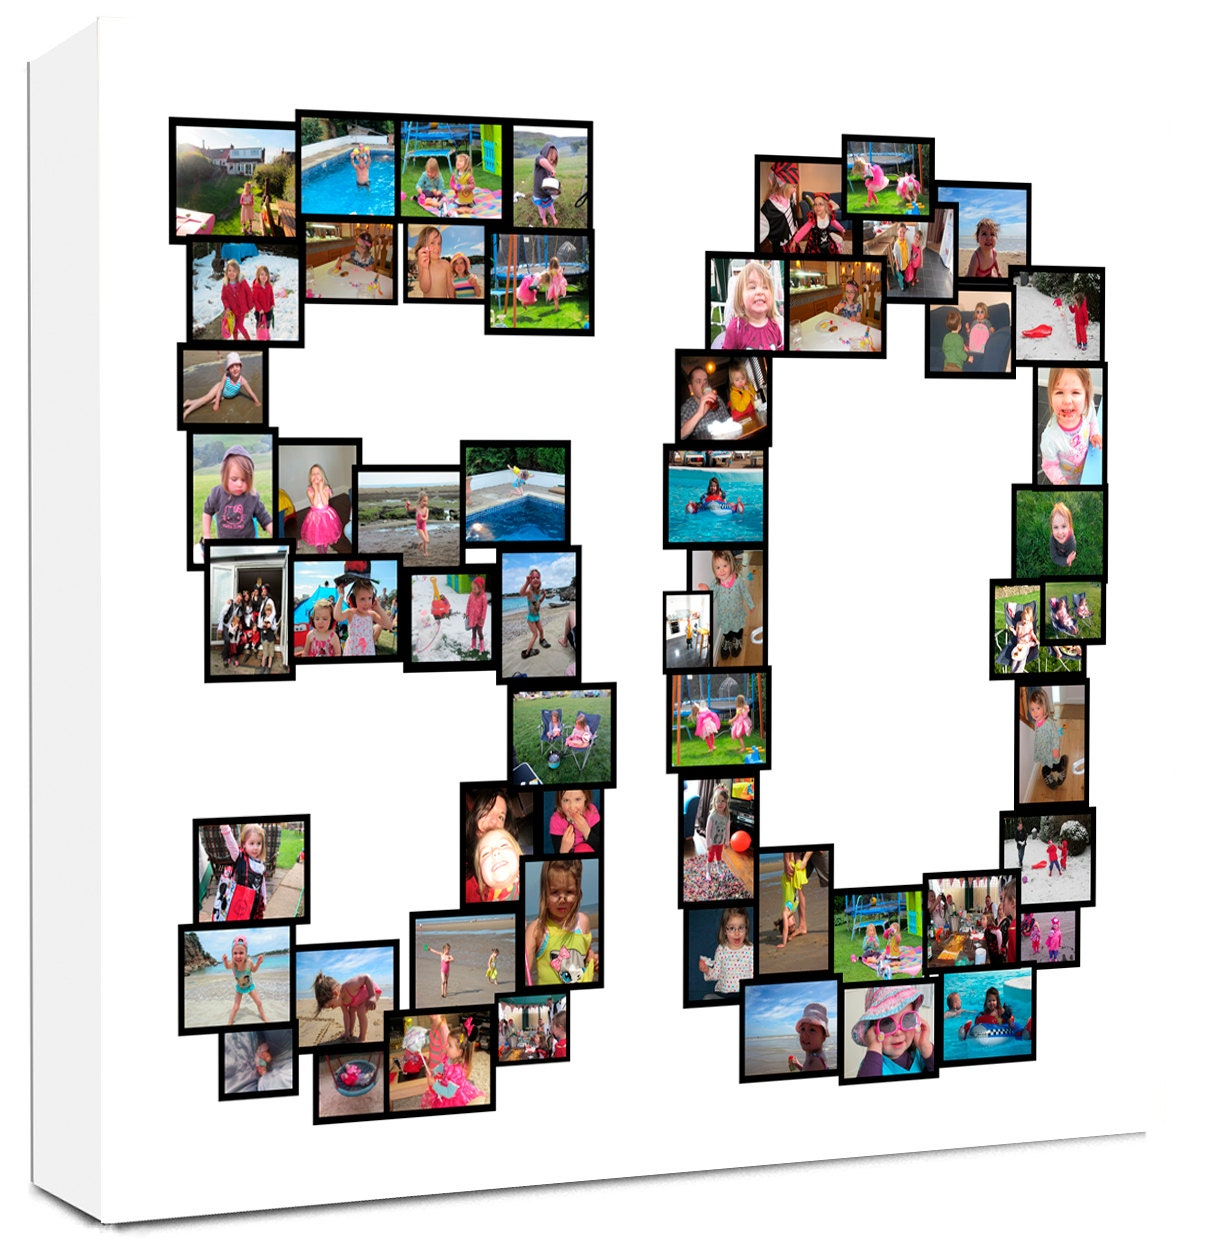 Photo Collage Template Images | Free Vectors, Stock Photos ...